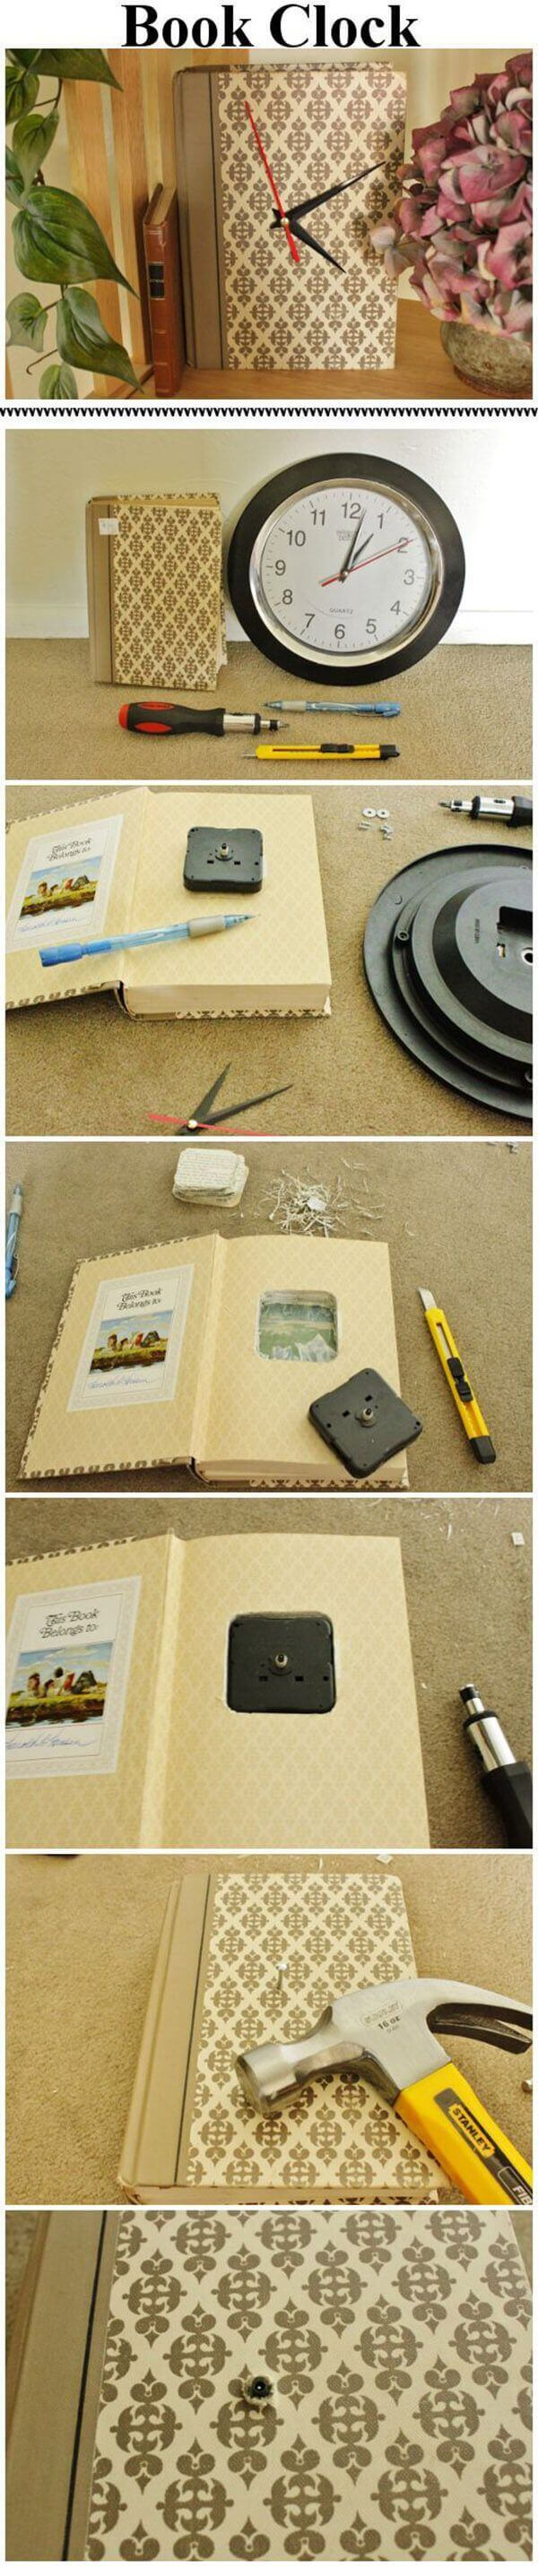 DIY Wall Clock Ideas for Avid Readers